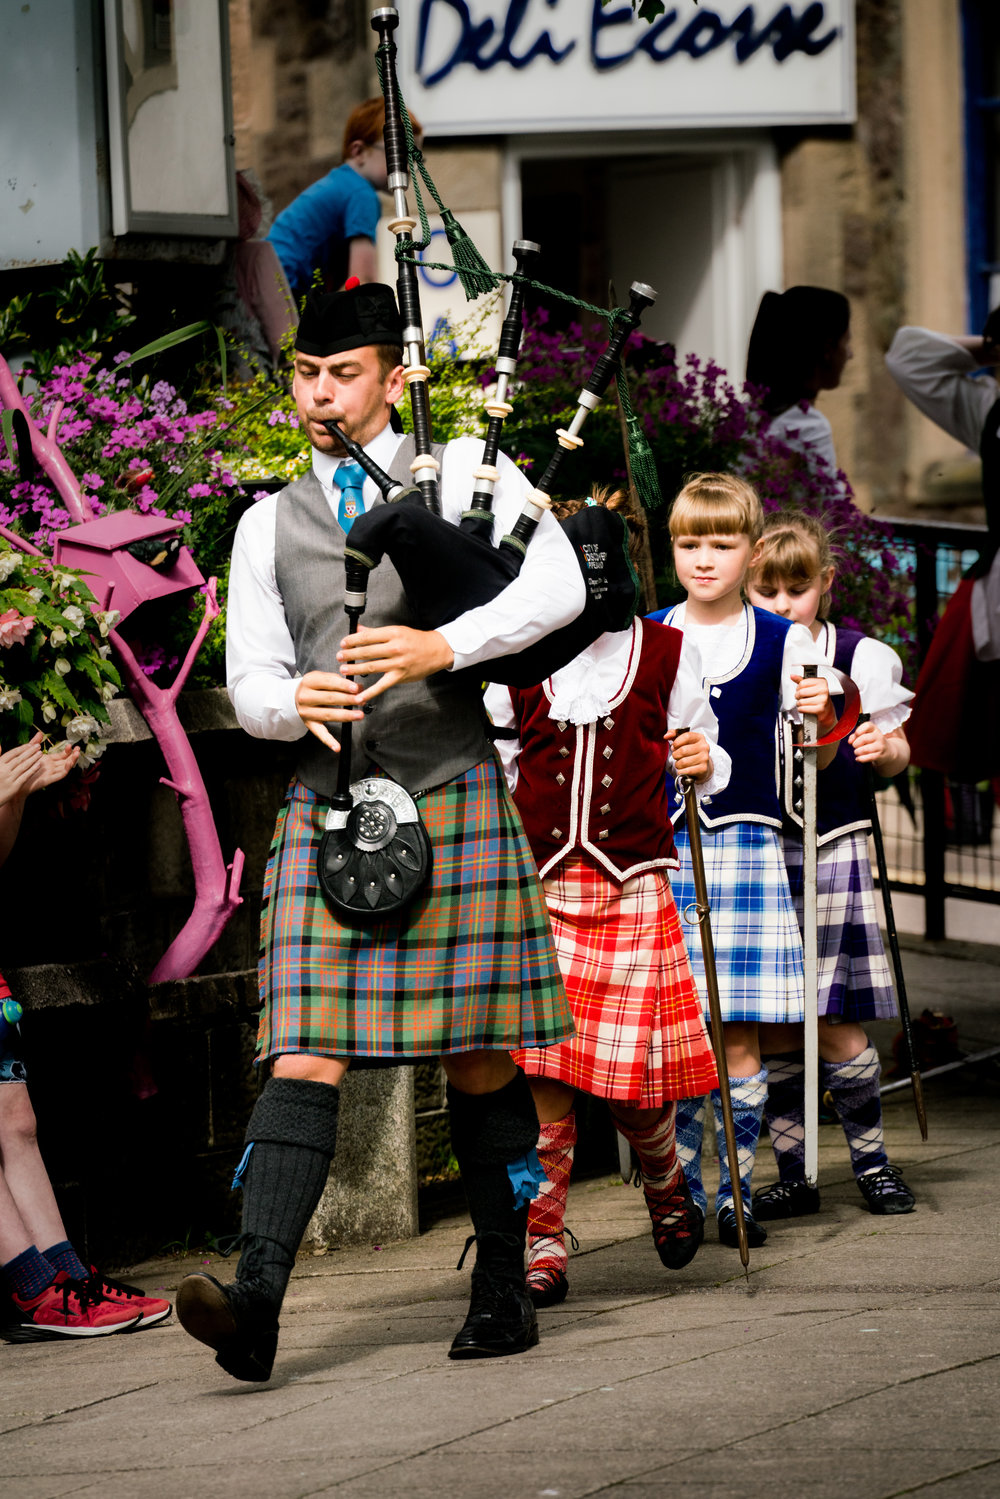 Scottish bagpiper and kilt-wearing girl dancers marching out to perform a sword dance